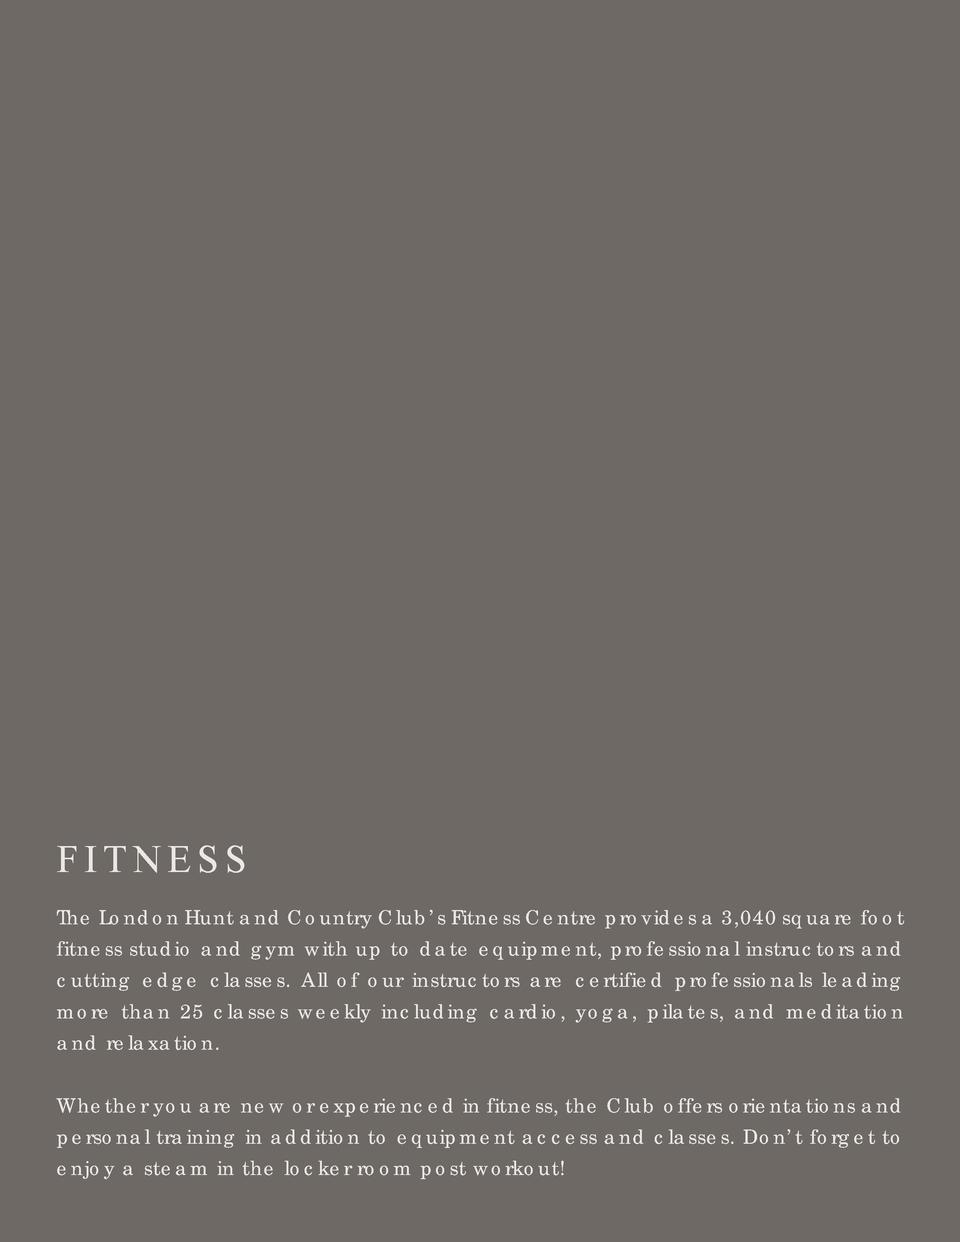 FITNESS The London Hunt and Country Club   s Fitness Centre provides a 3,040 square foot fitness studio and gym with up to...